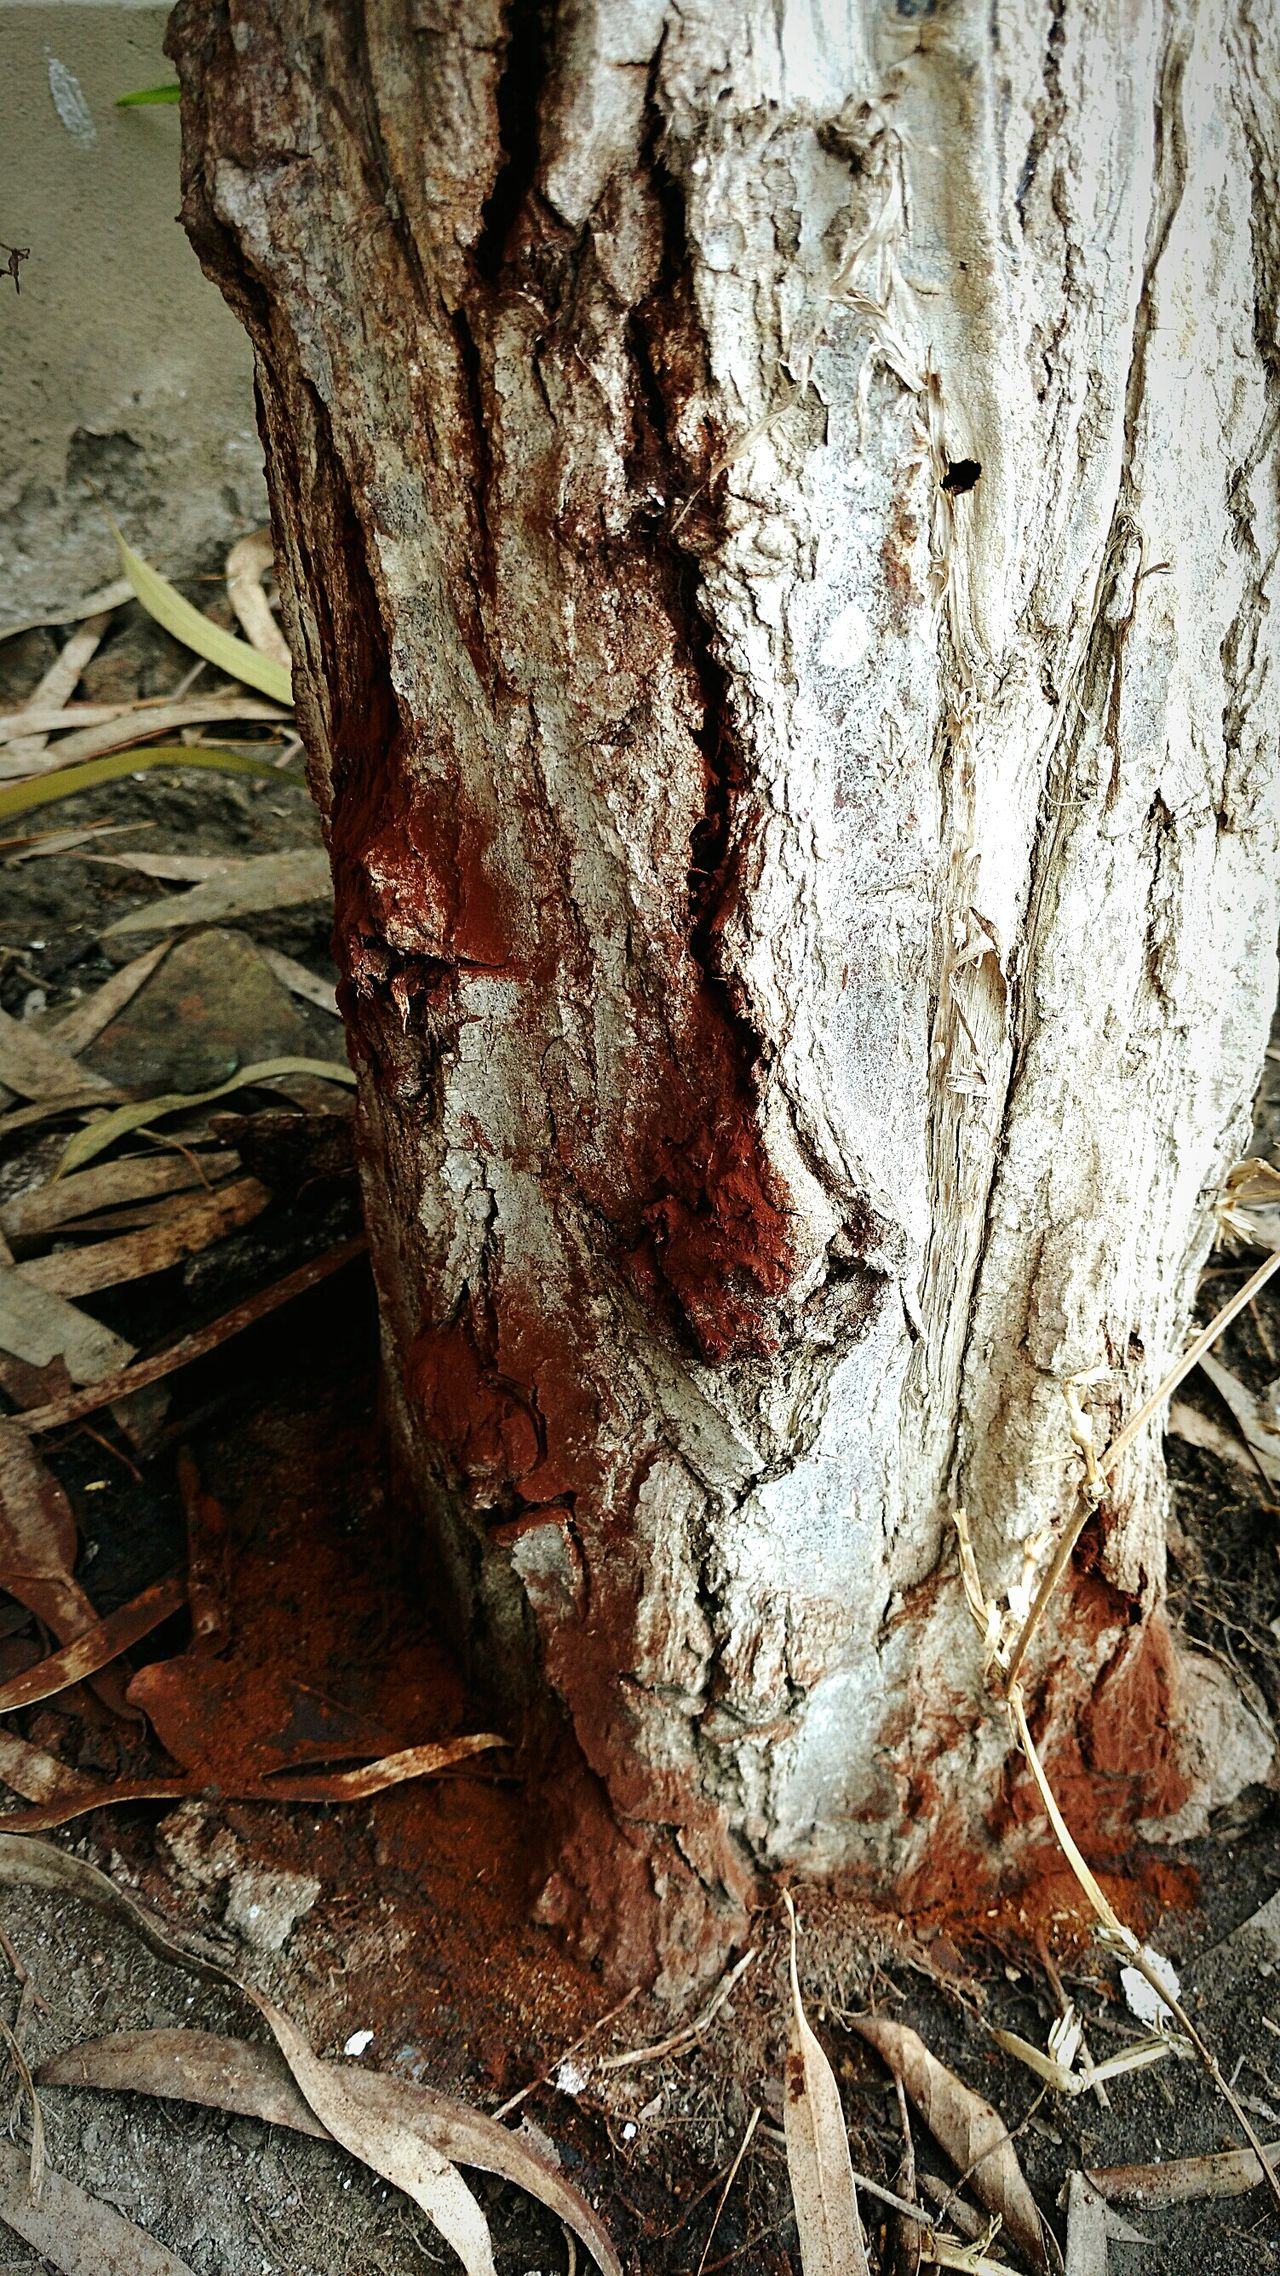 Decaying trunk. Close-up Outdoors Nature Beauty In Nature No People Day Decay Decay And Dereliction Beauty Of Decay Broken Broken Beauty EyeEm Gallery EyeEmBestPics